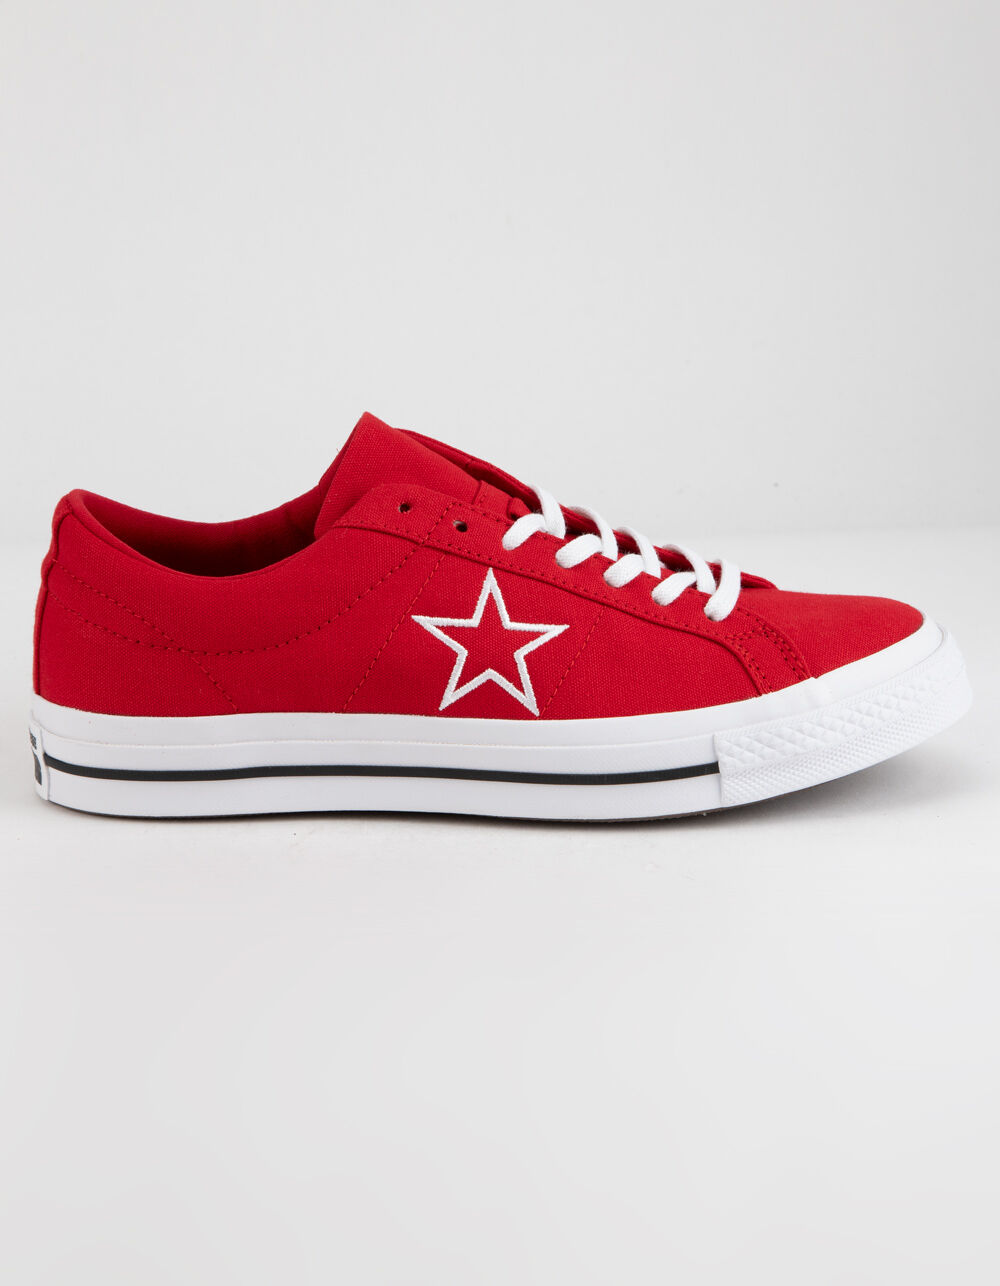 CONVERSE ONE STAR OX ENAMEL RED & WHITE LOW TOP SHOES